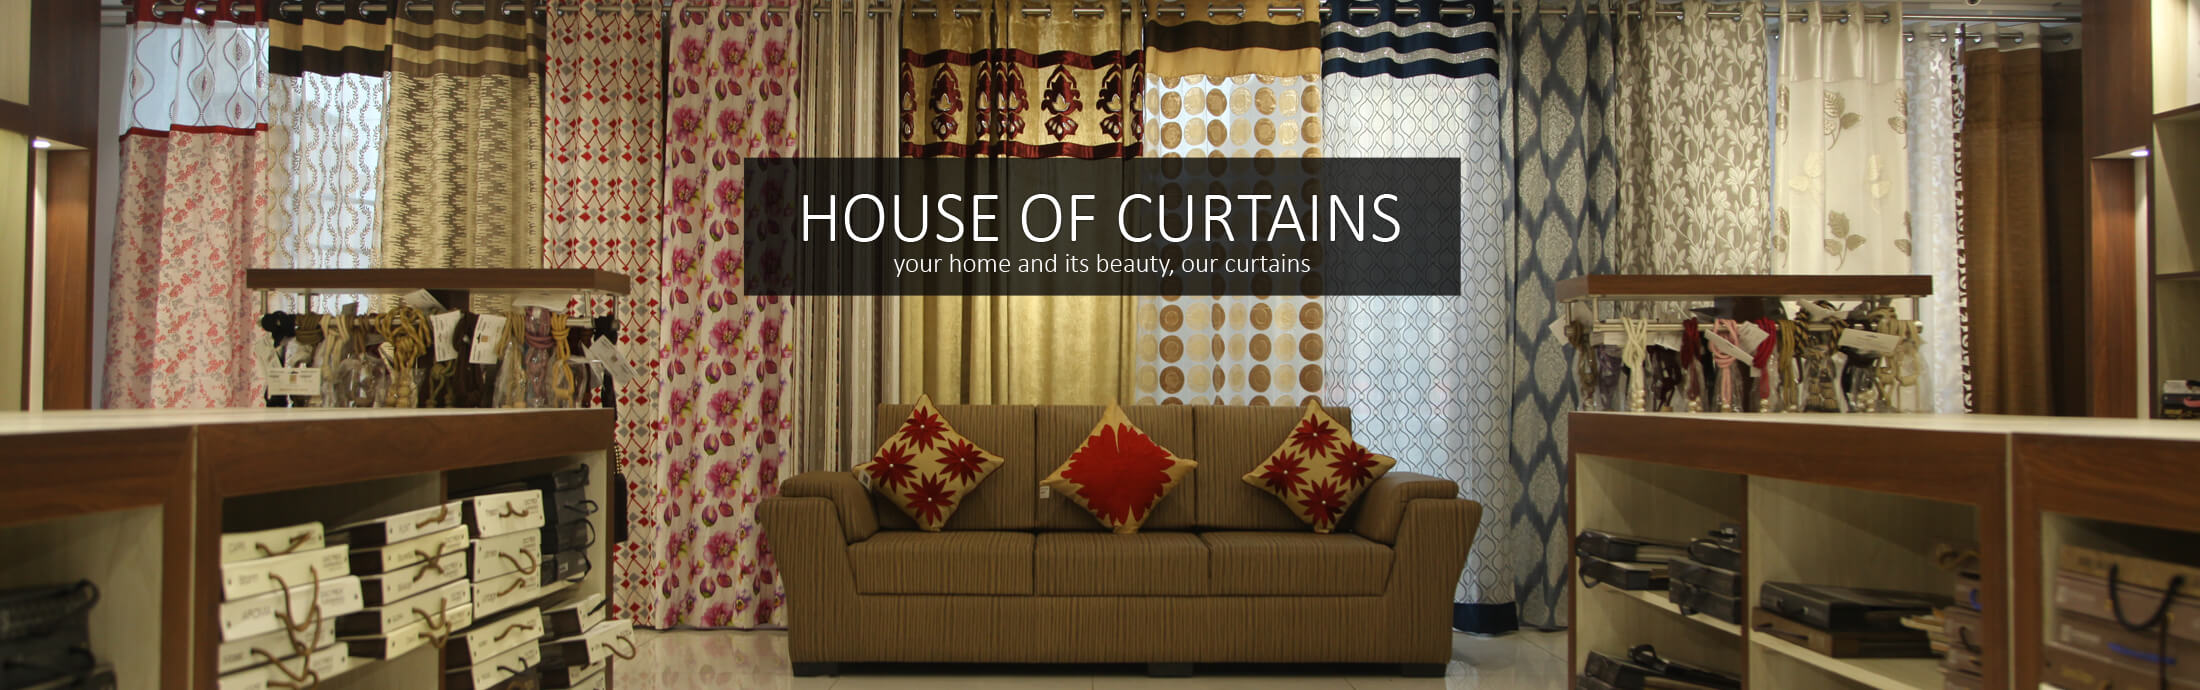 House of Curtains